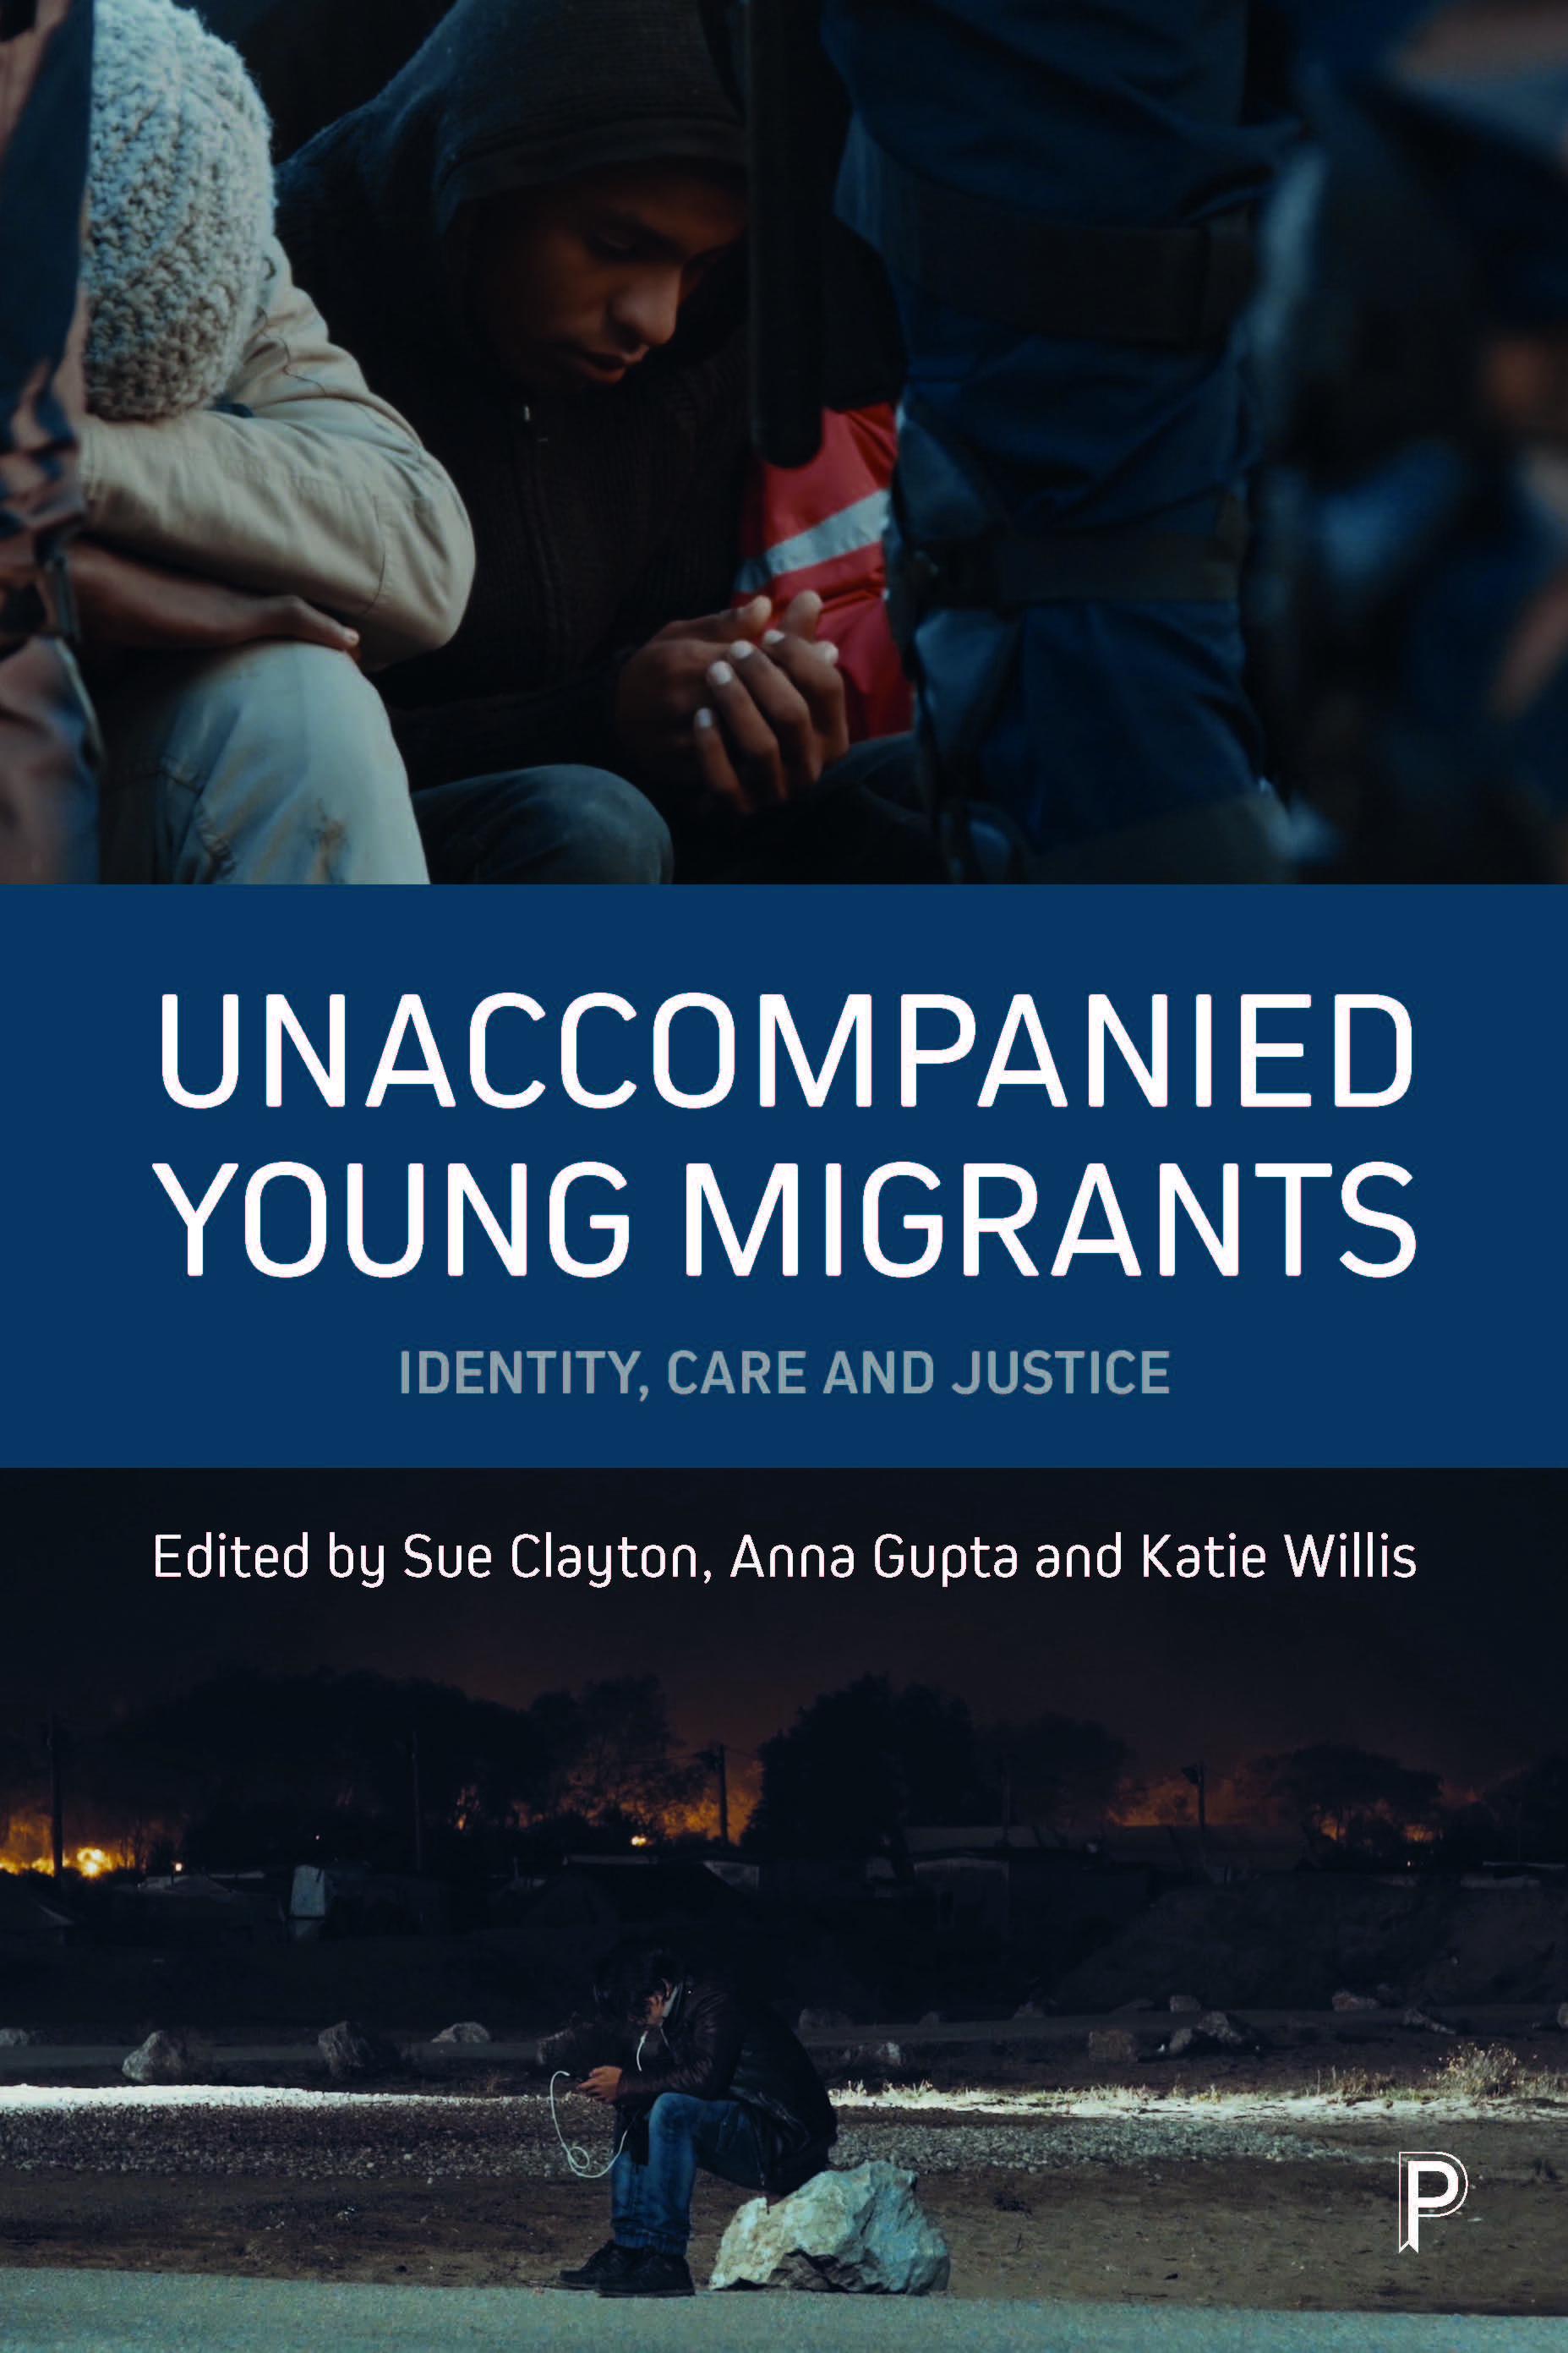 Unaccompanied child migrants face dangerous and uncertain journeys